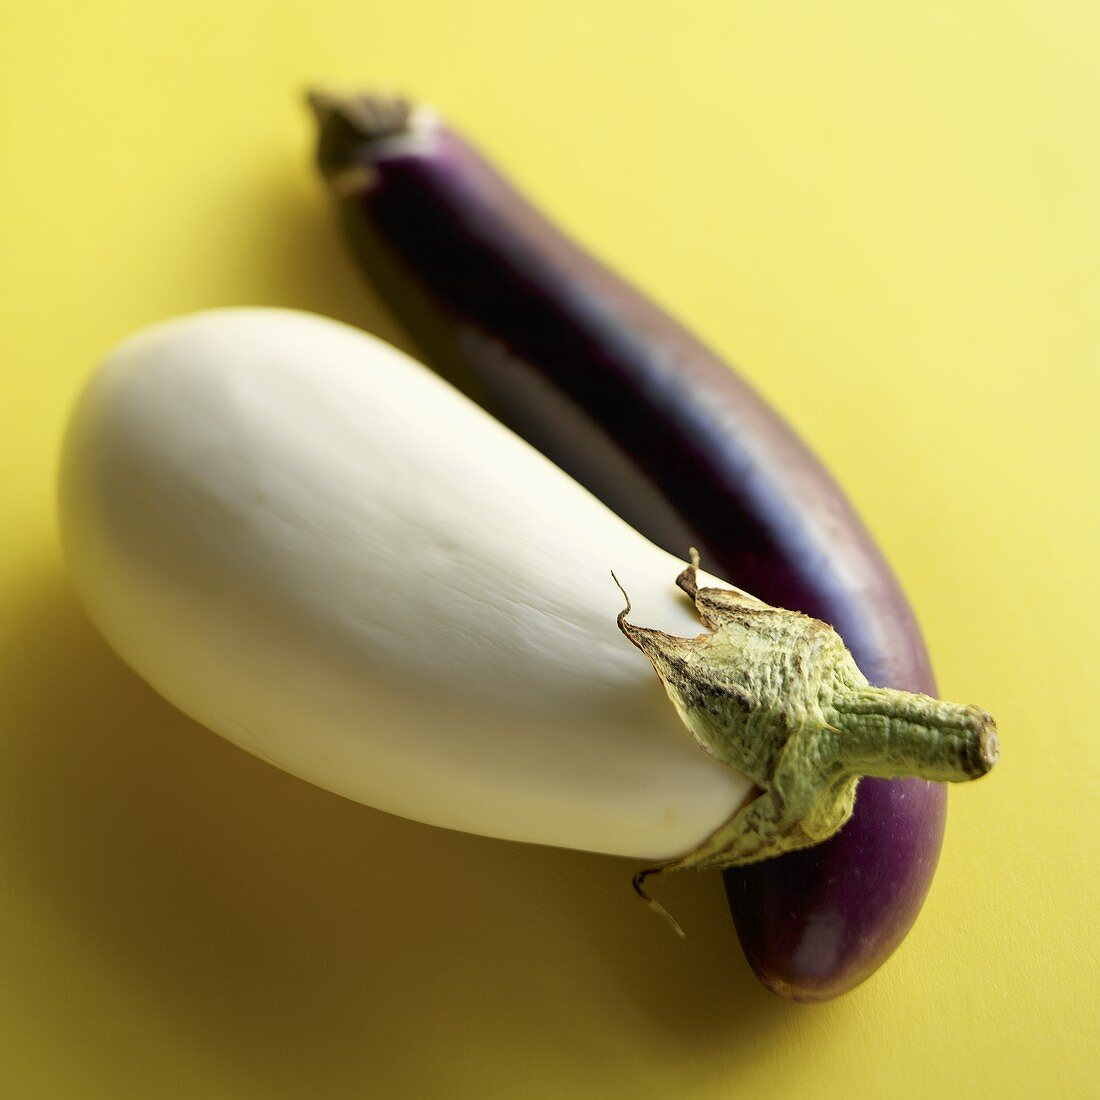 Two Eggplants, One White and One Purple